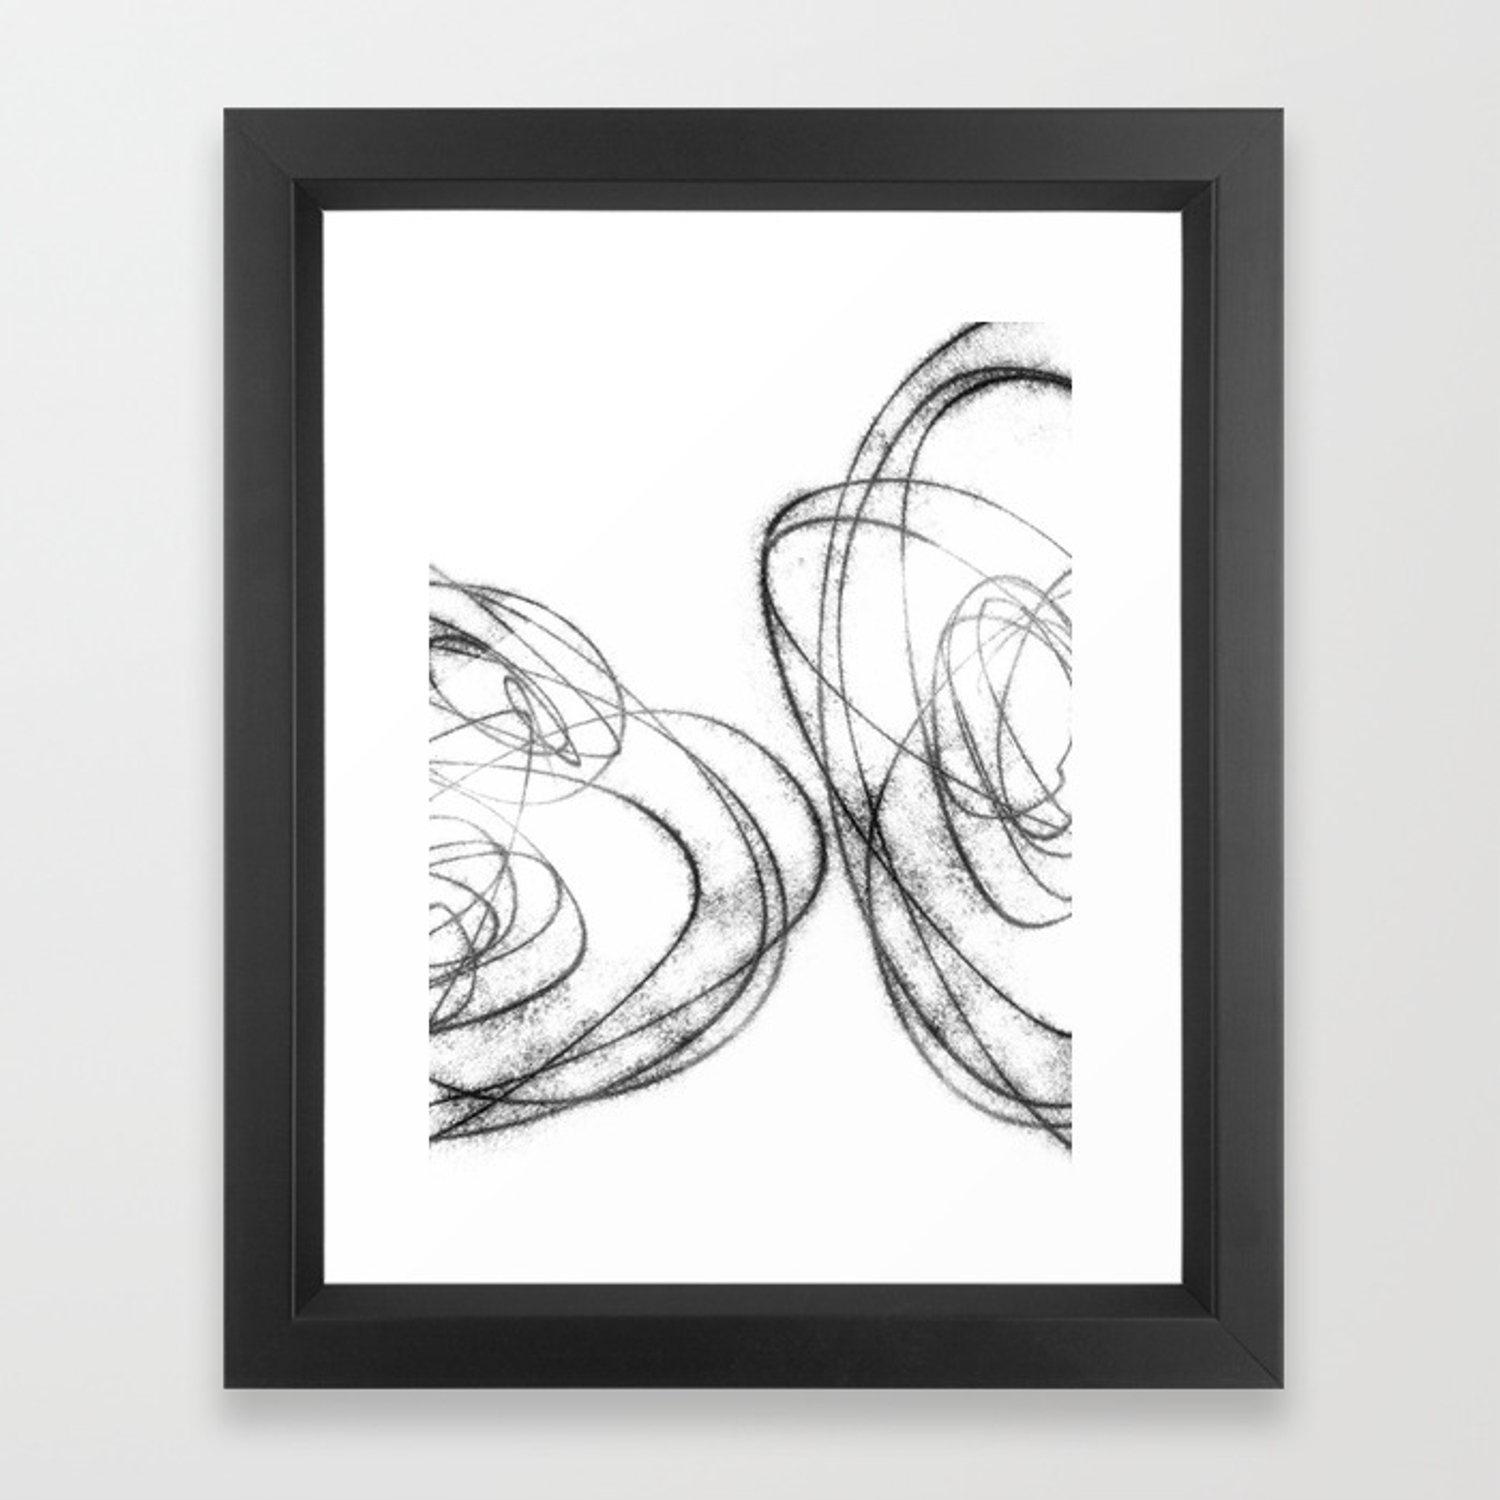 Minimalist abstract line drawing in black and white framed art print